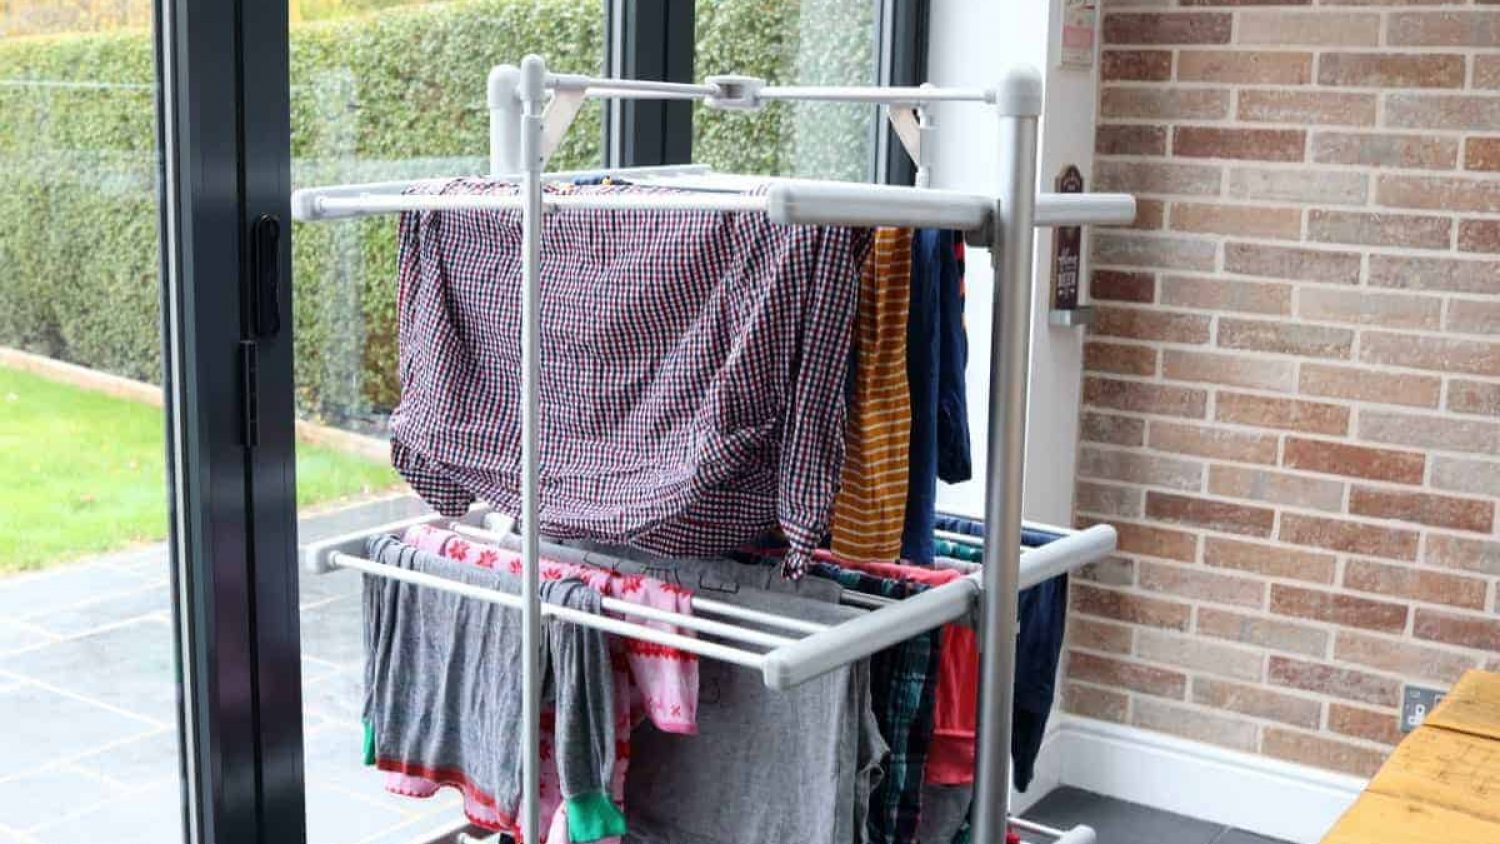 Top 5 Best Heated Clothes Airers that Will Get Your Clothes Dry In No Time